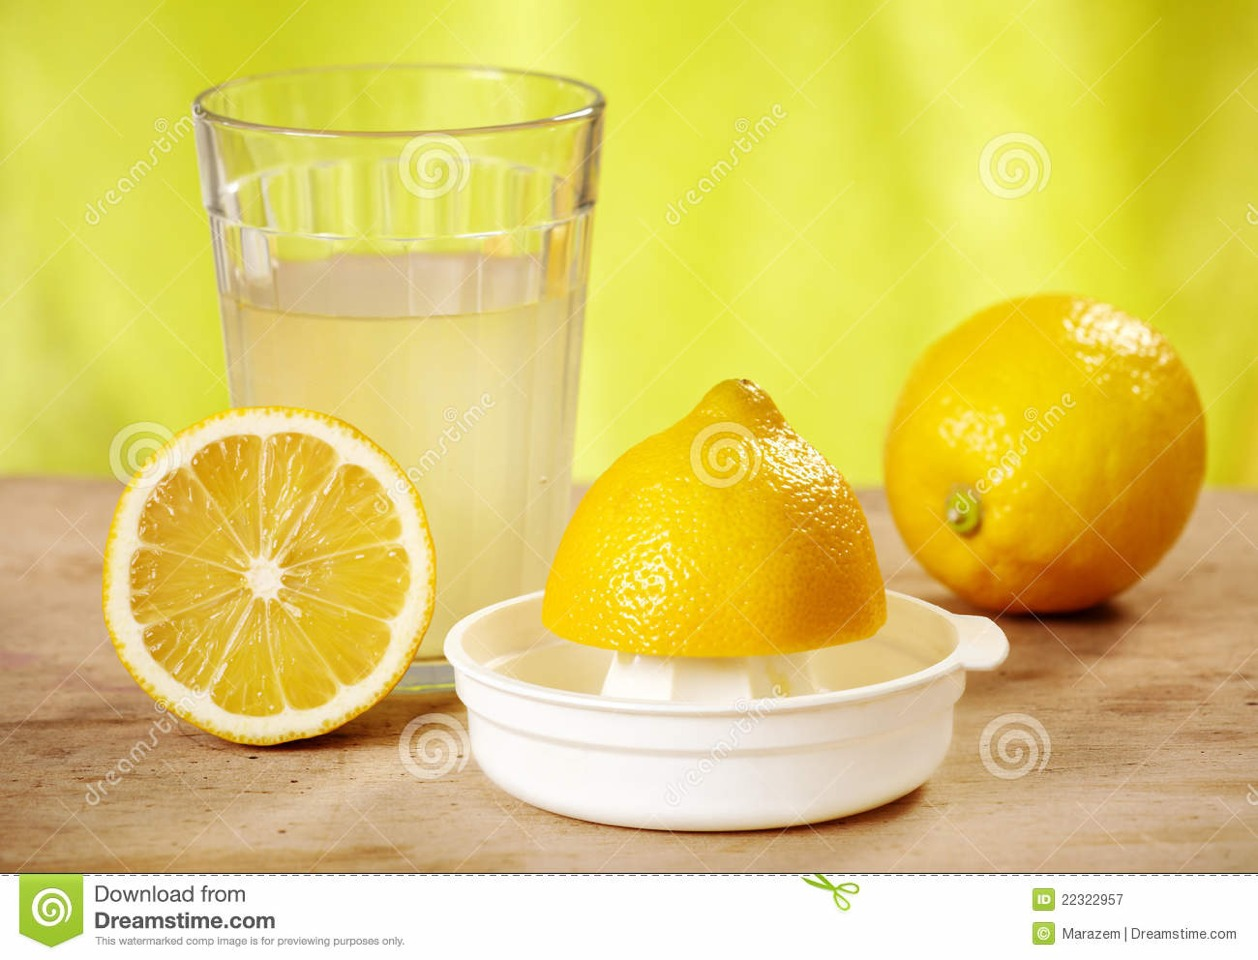 You always knew lemon juice was your best friend...squeeze a couple of lemons and collect the lemon juice.